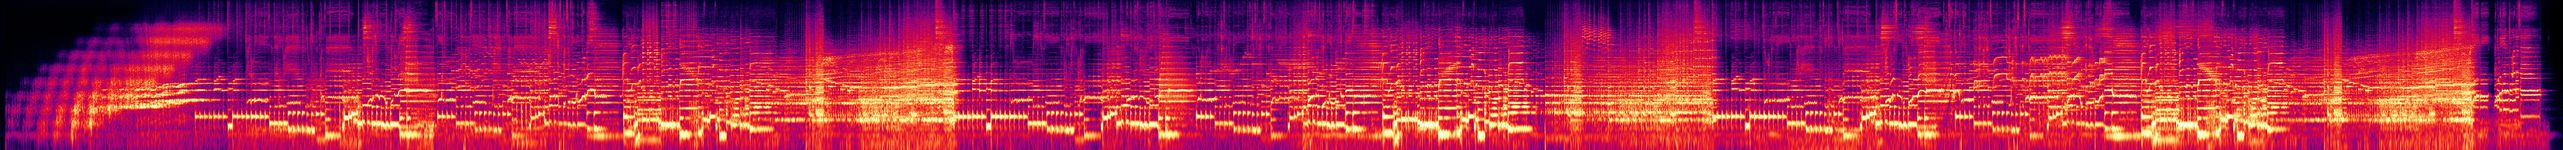 Your Hidden Dreams - Spectrogram.jpg